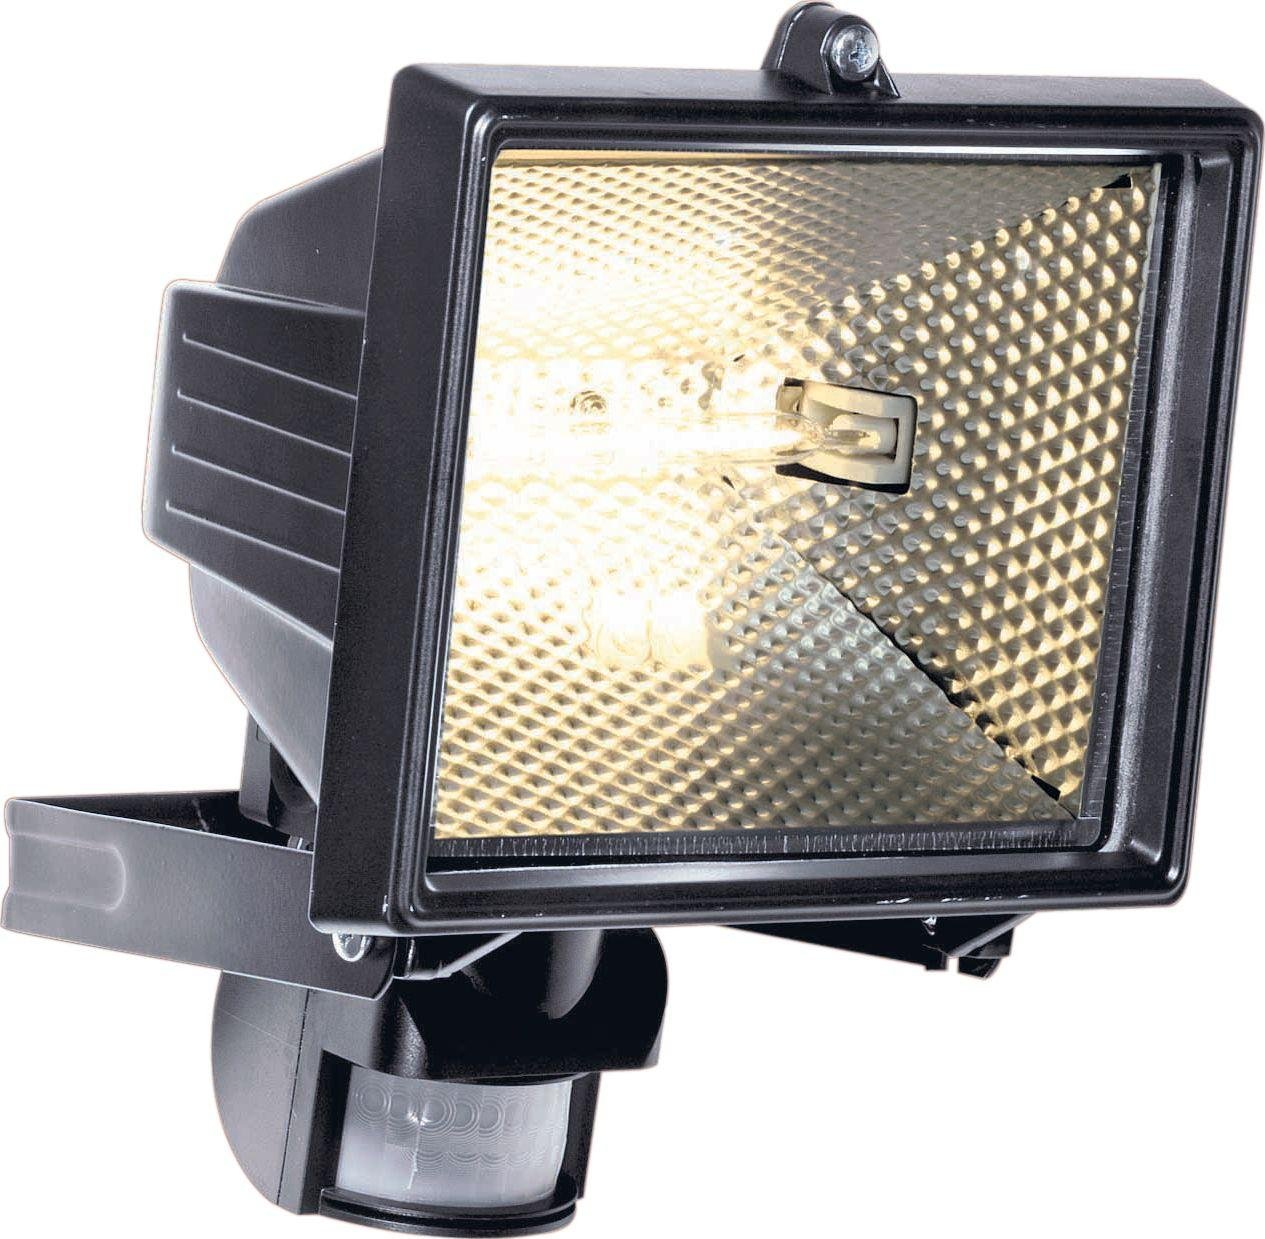 home-400-watts-pir-security-light